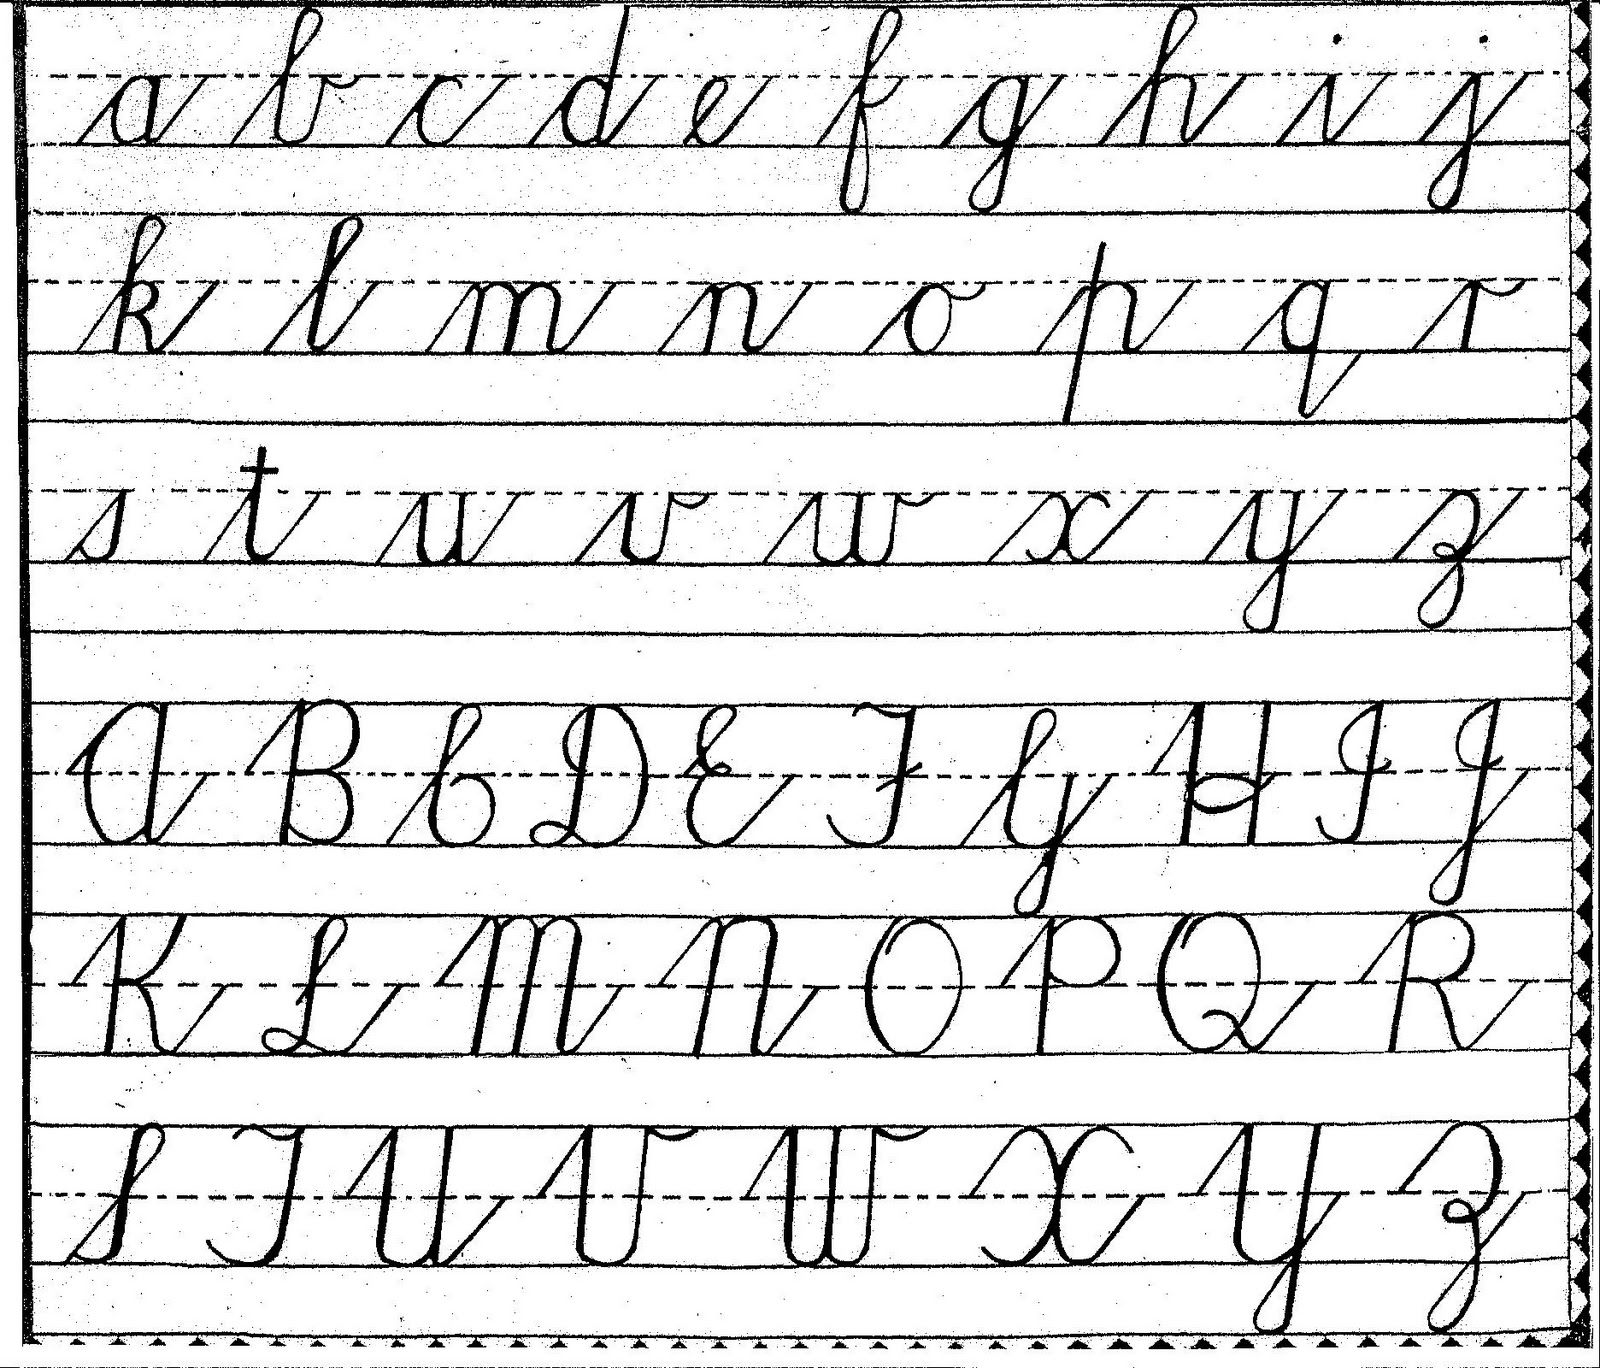 worksheet Cursive Practice Worksheets collection of free cursive handwriting from all over the world world